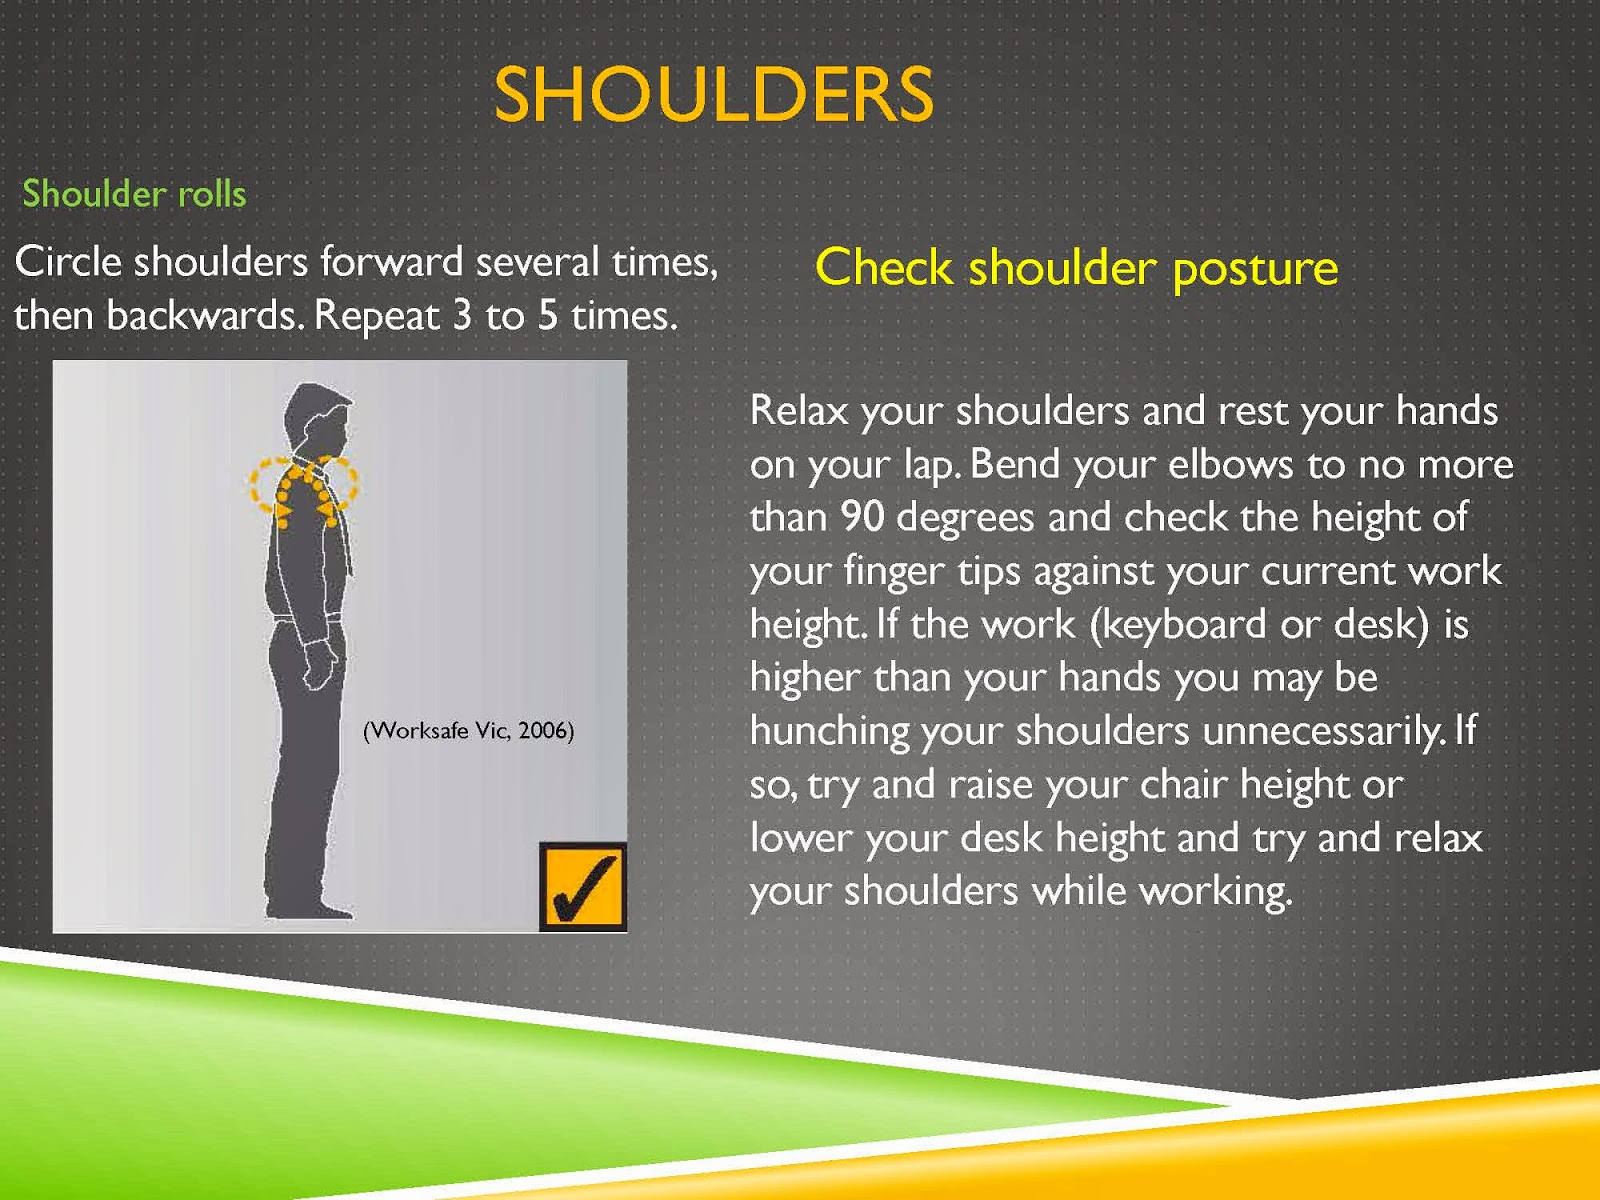 SHOULDER POSTURE AND SHOULDER ROLLS